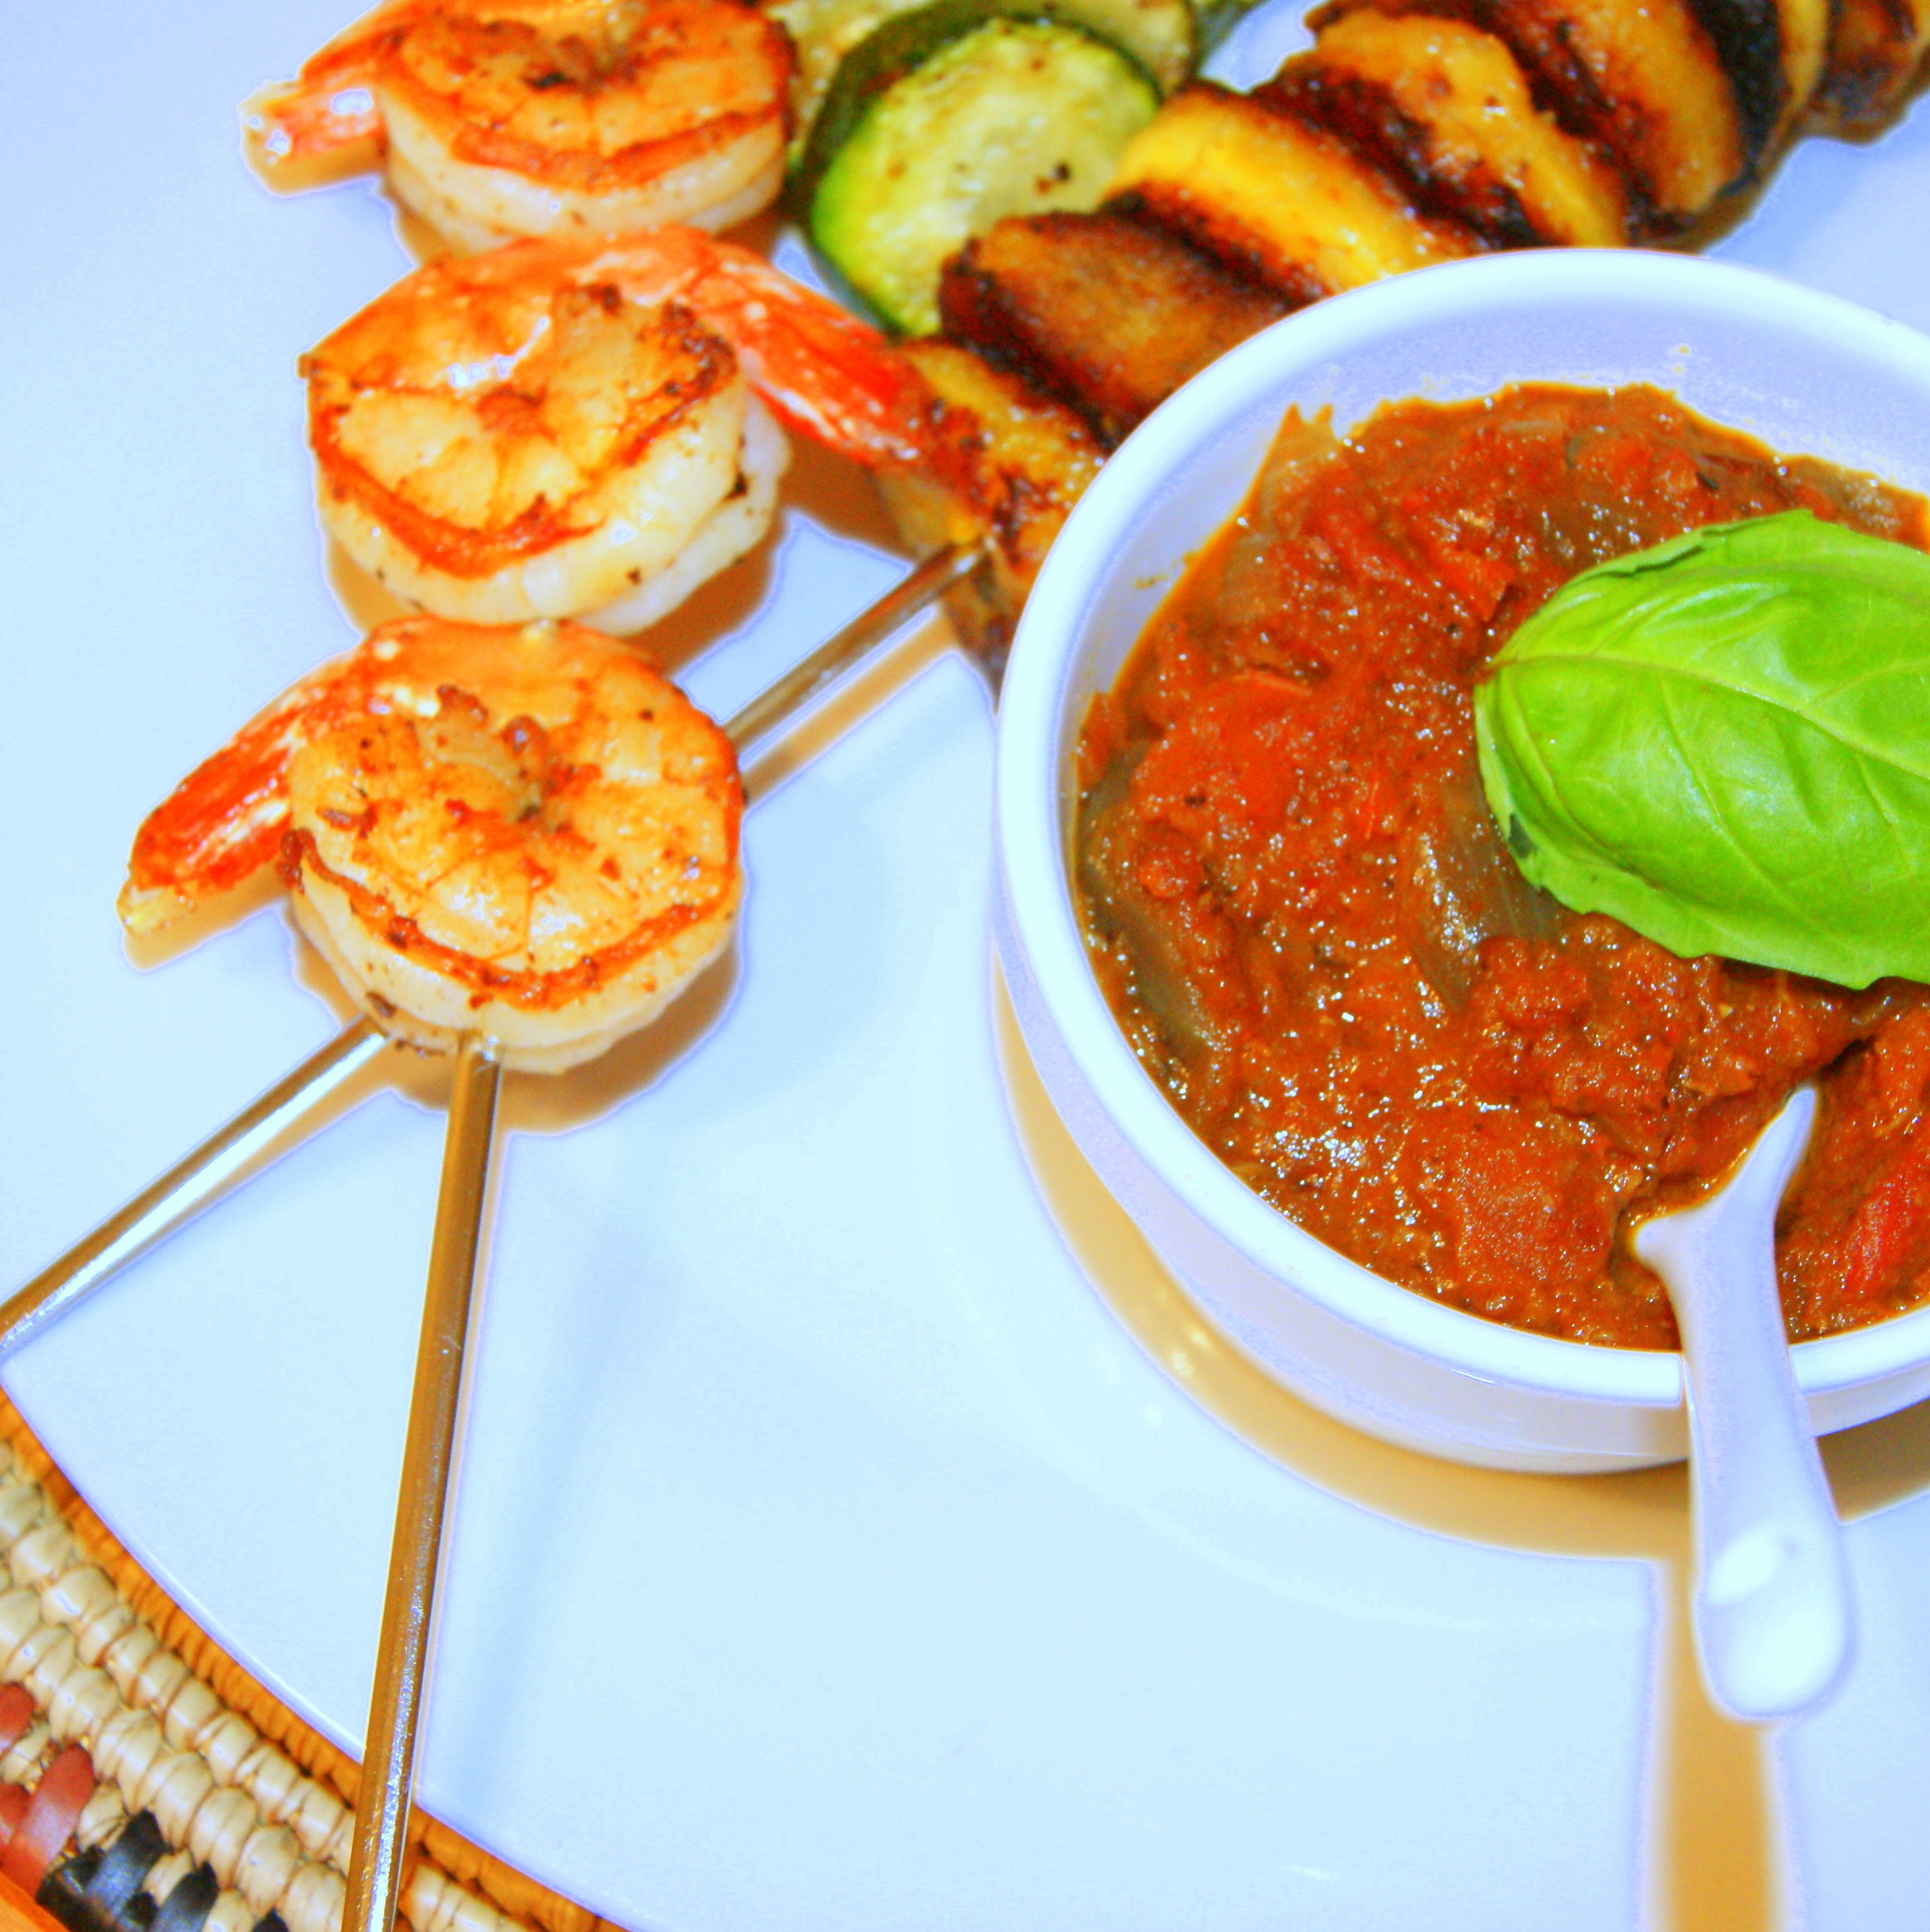 Handcrafted Peppered Sauce